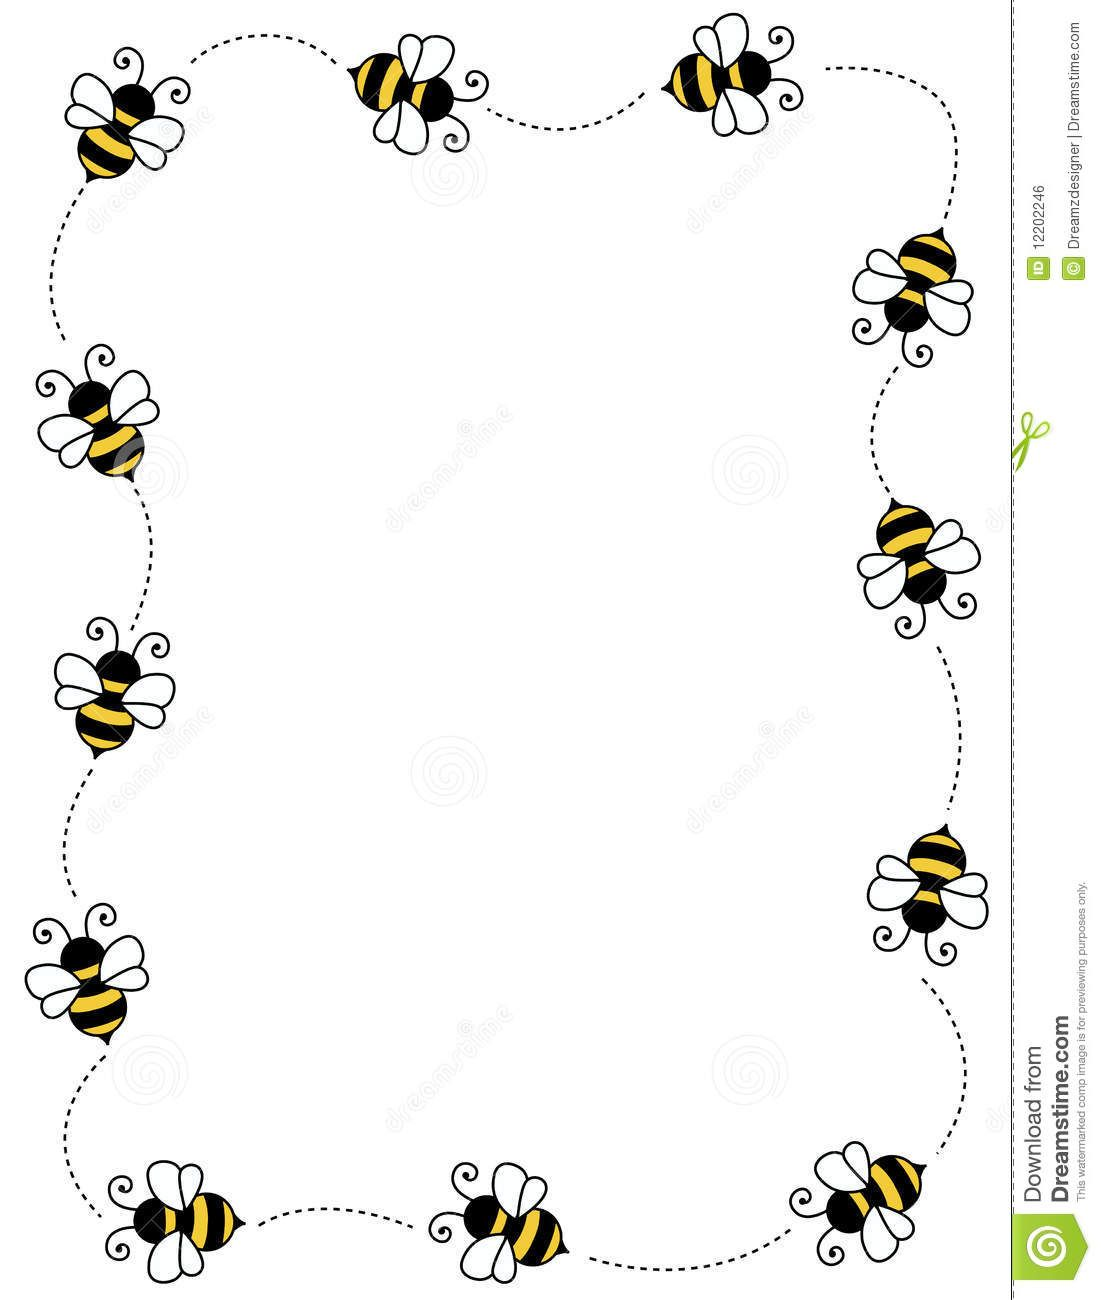 Clip Art Frames With Bumble Bees